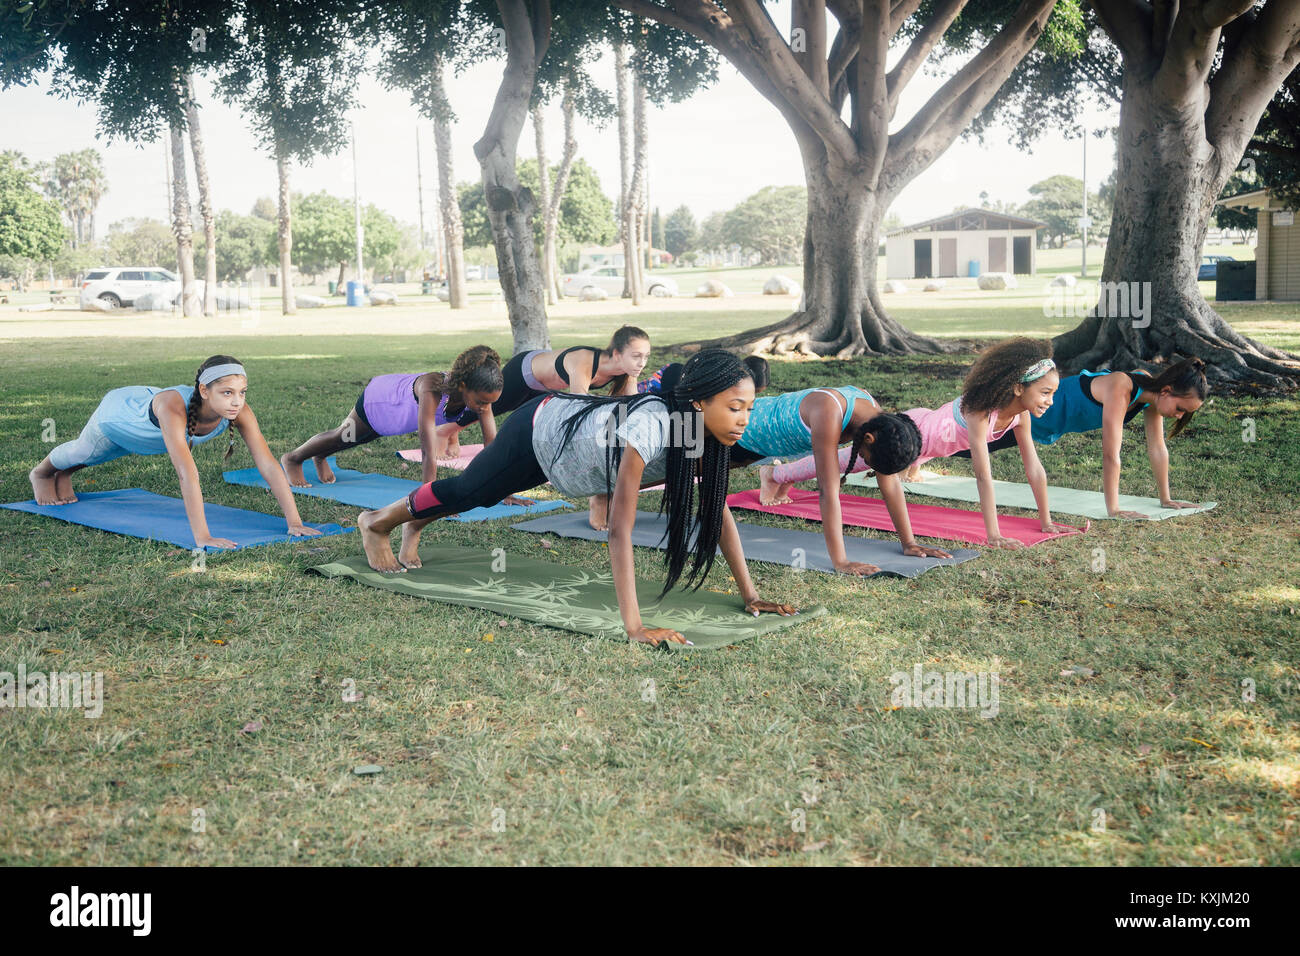 Schoolgirls practicing yoga plank pose on school sports field - Stock Image